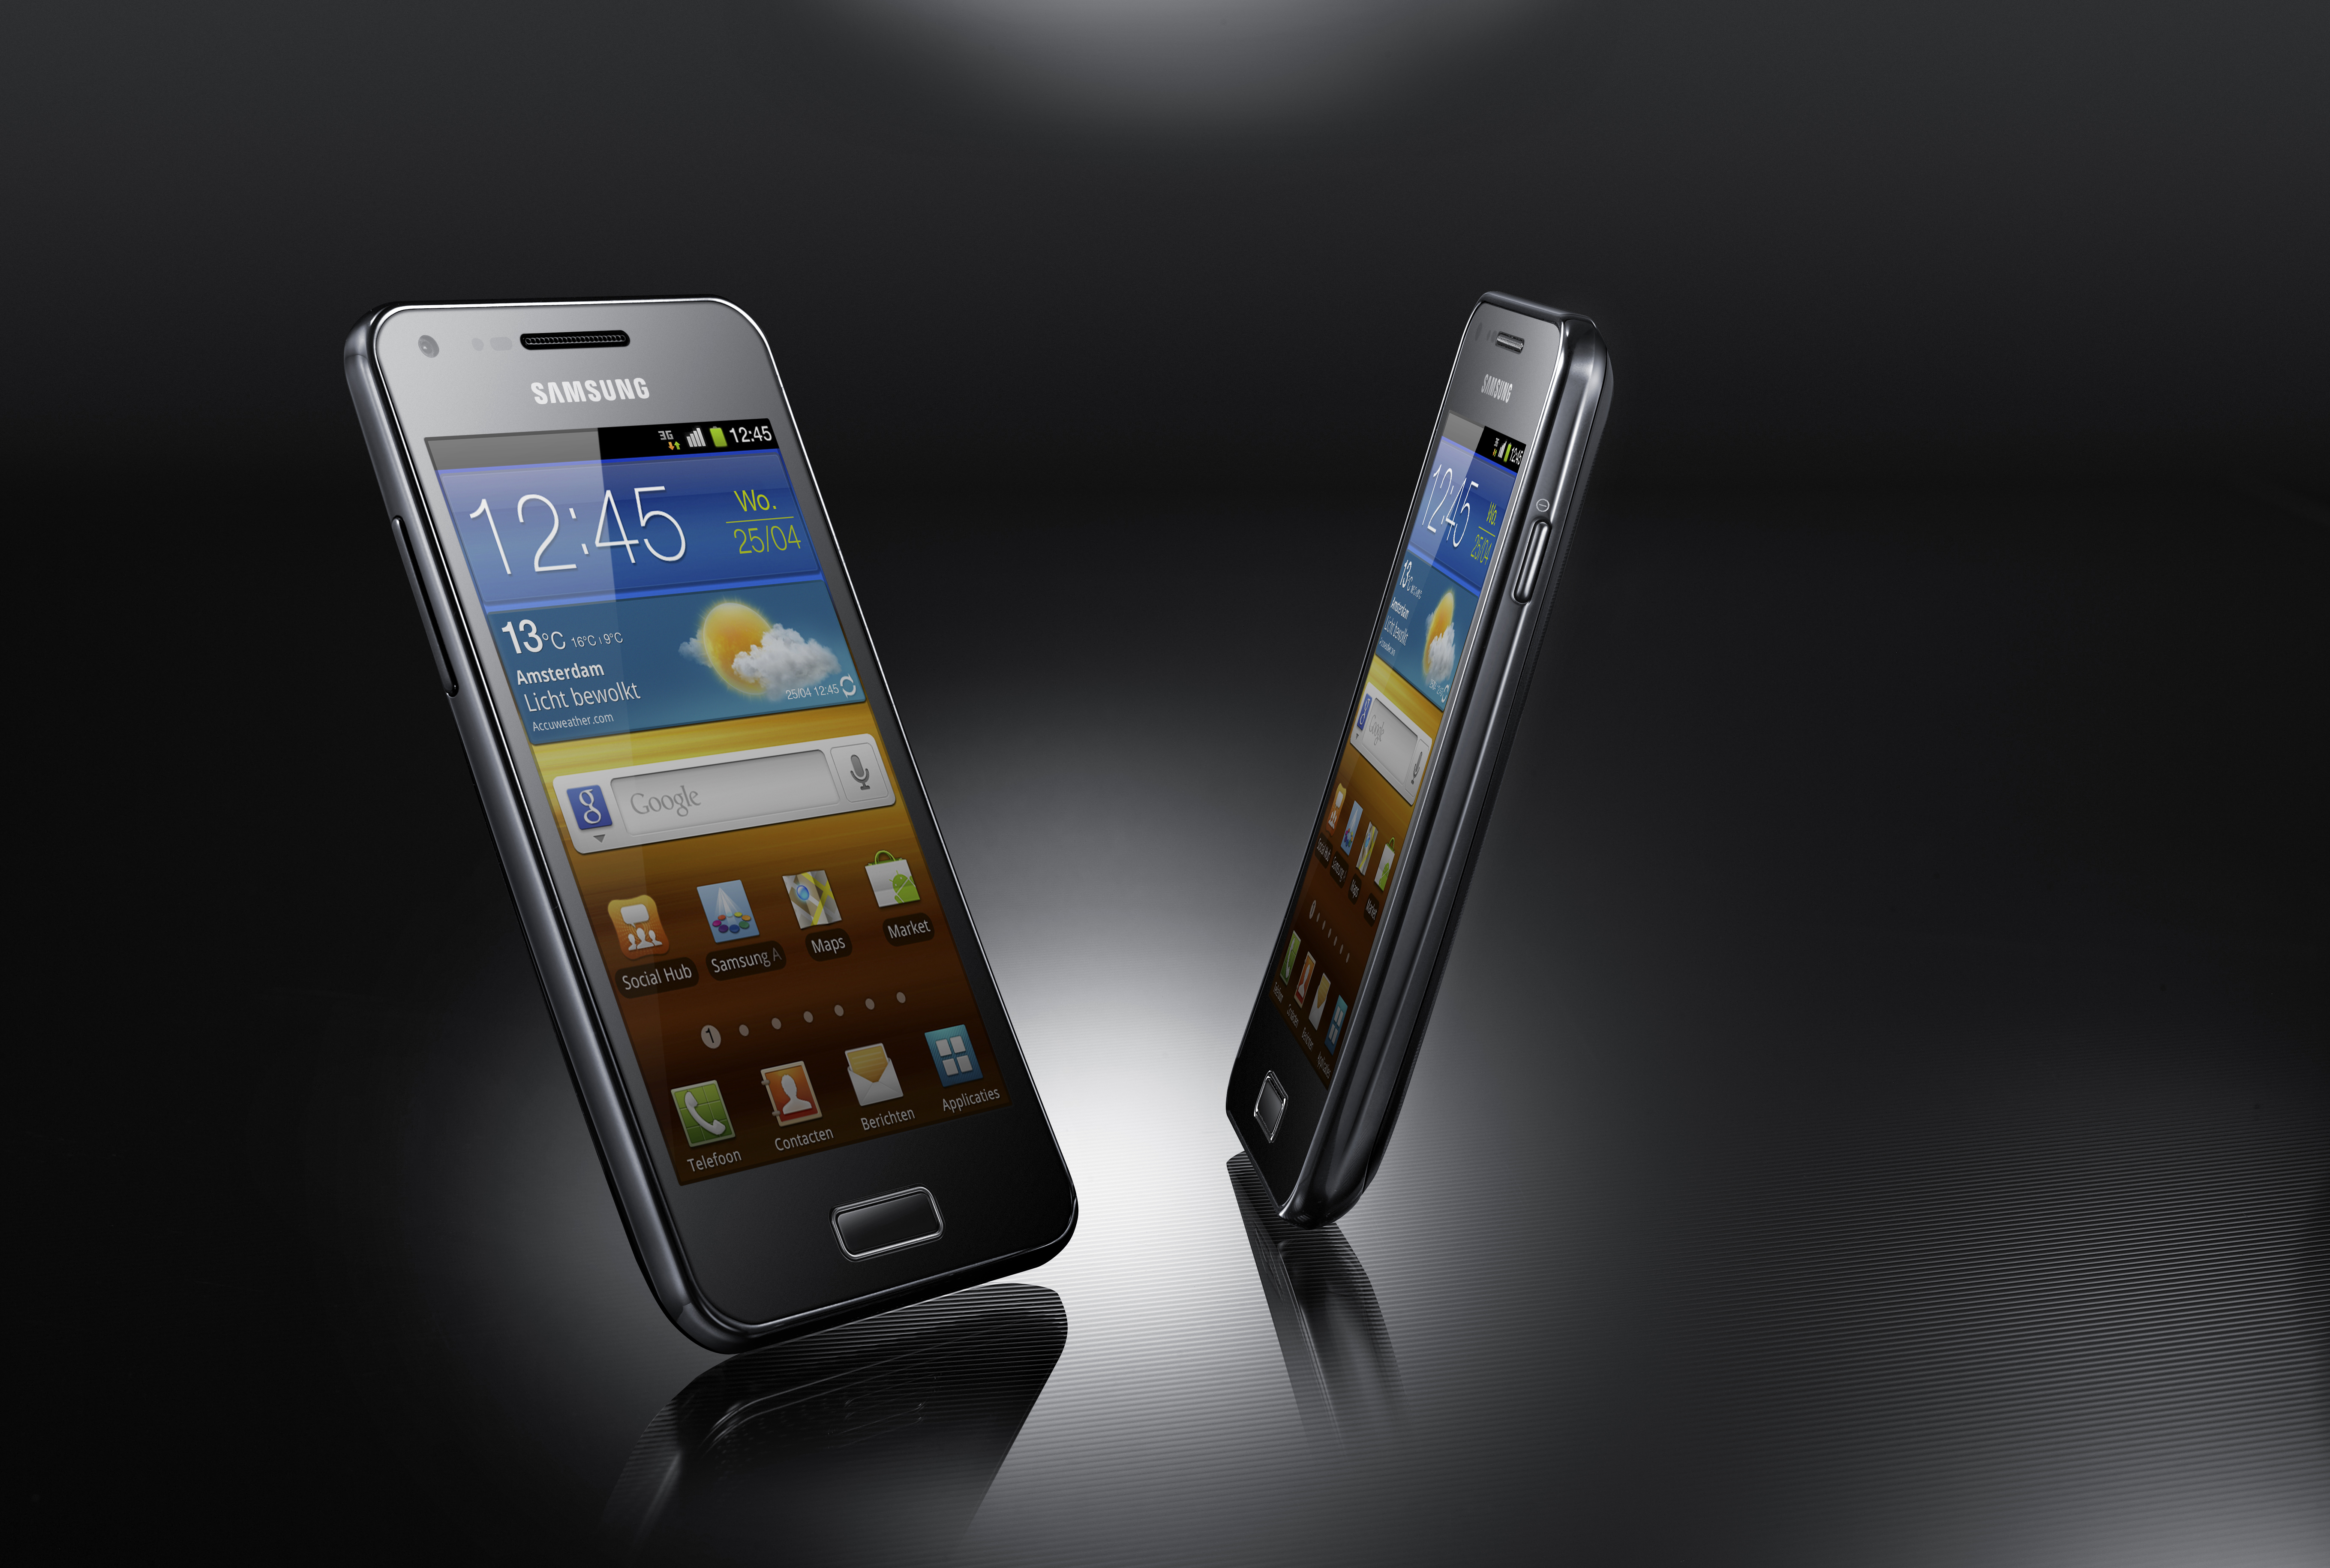 Download odin android samsung galaxy s2